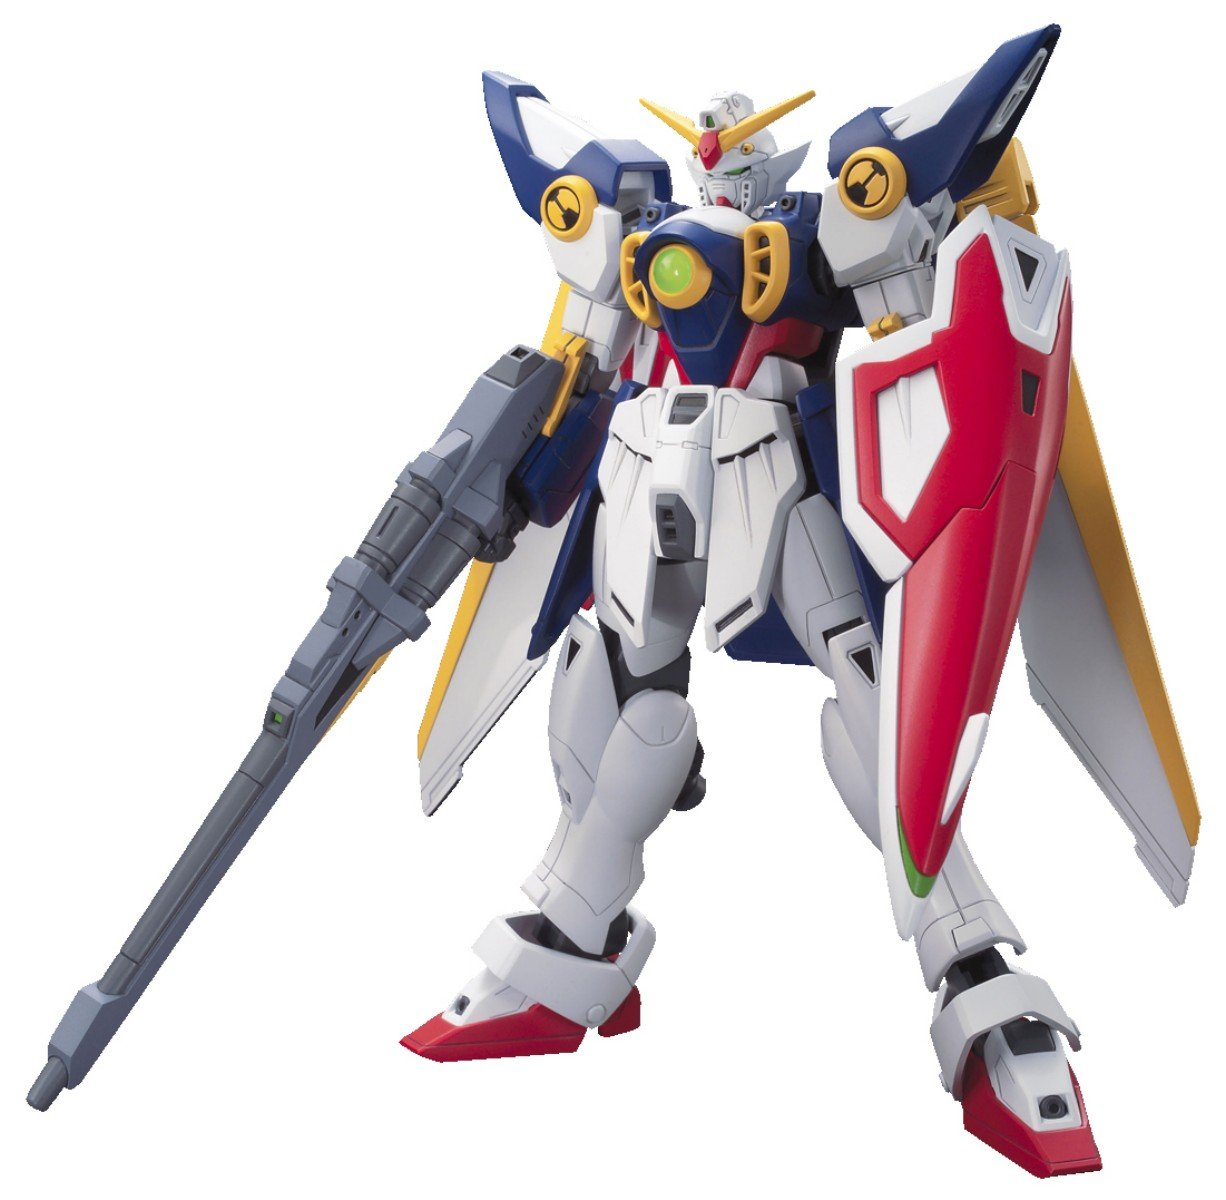 usa hobby stores with Bandai Hobby 162 Hgac Xxxg 01w Wing Gundam Model 142136420015 on Vendere Le Tue Carte Pokemon also 559642691171436962 additionally i also 1382871 32628507531 additionally Cities Death Basilica Administratum.